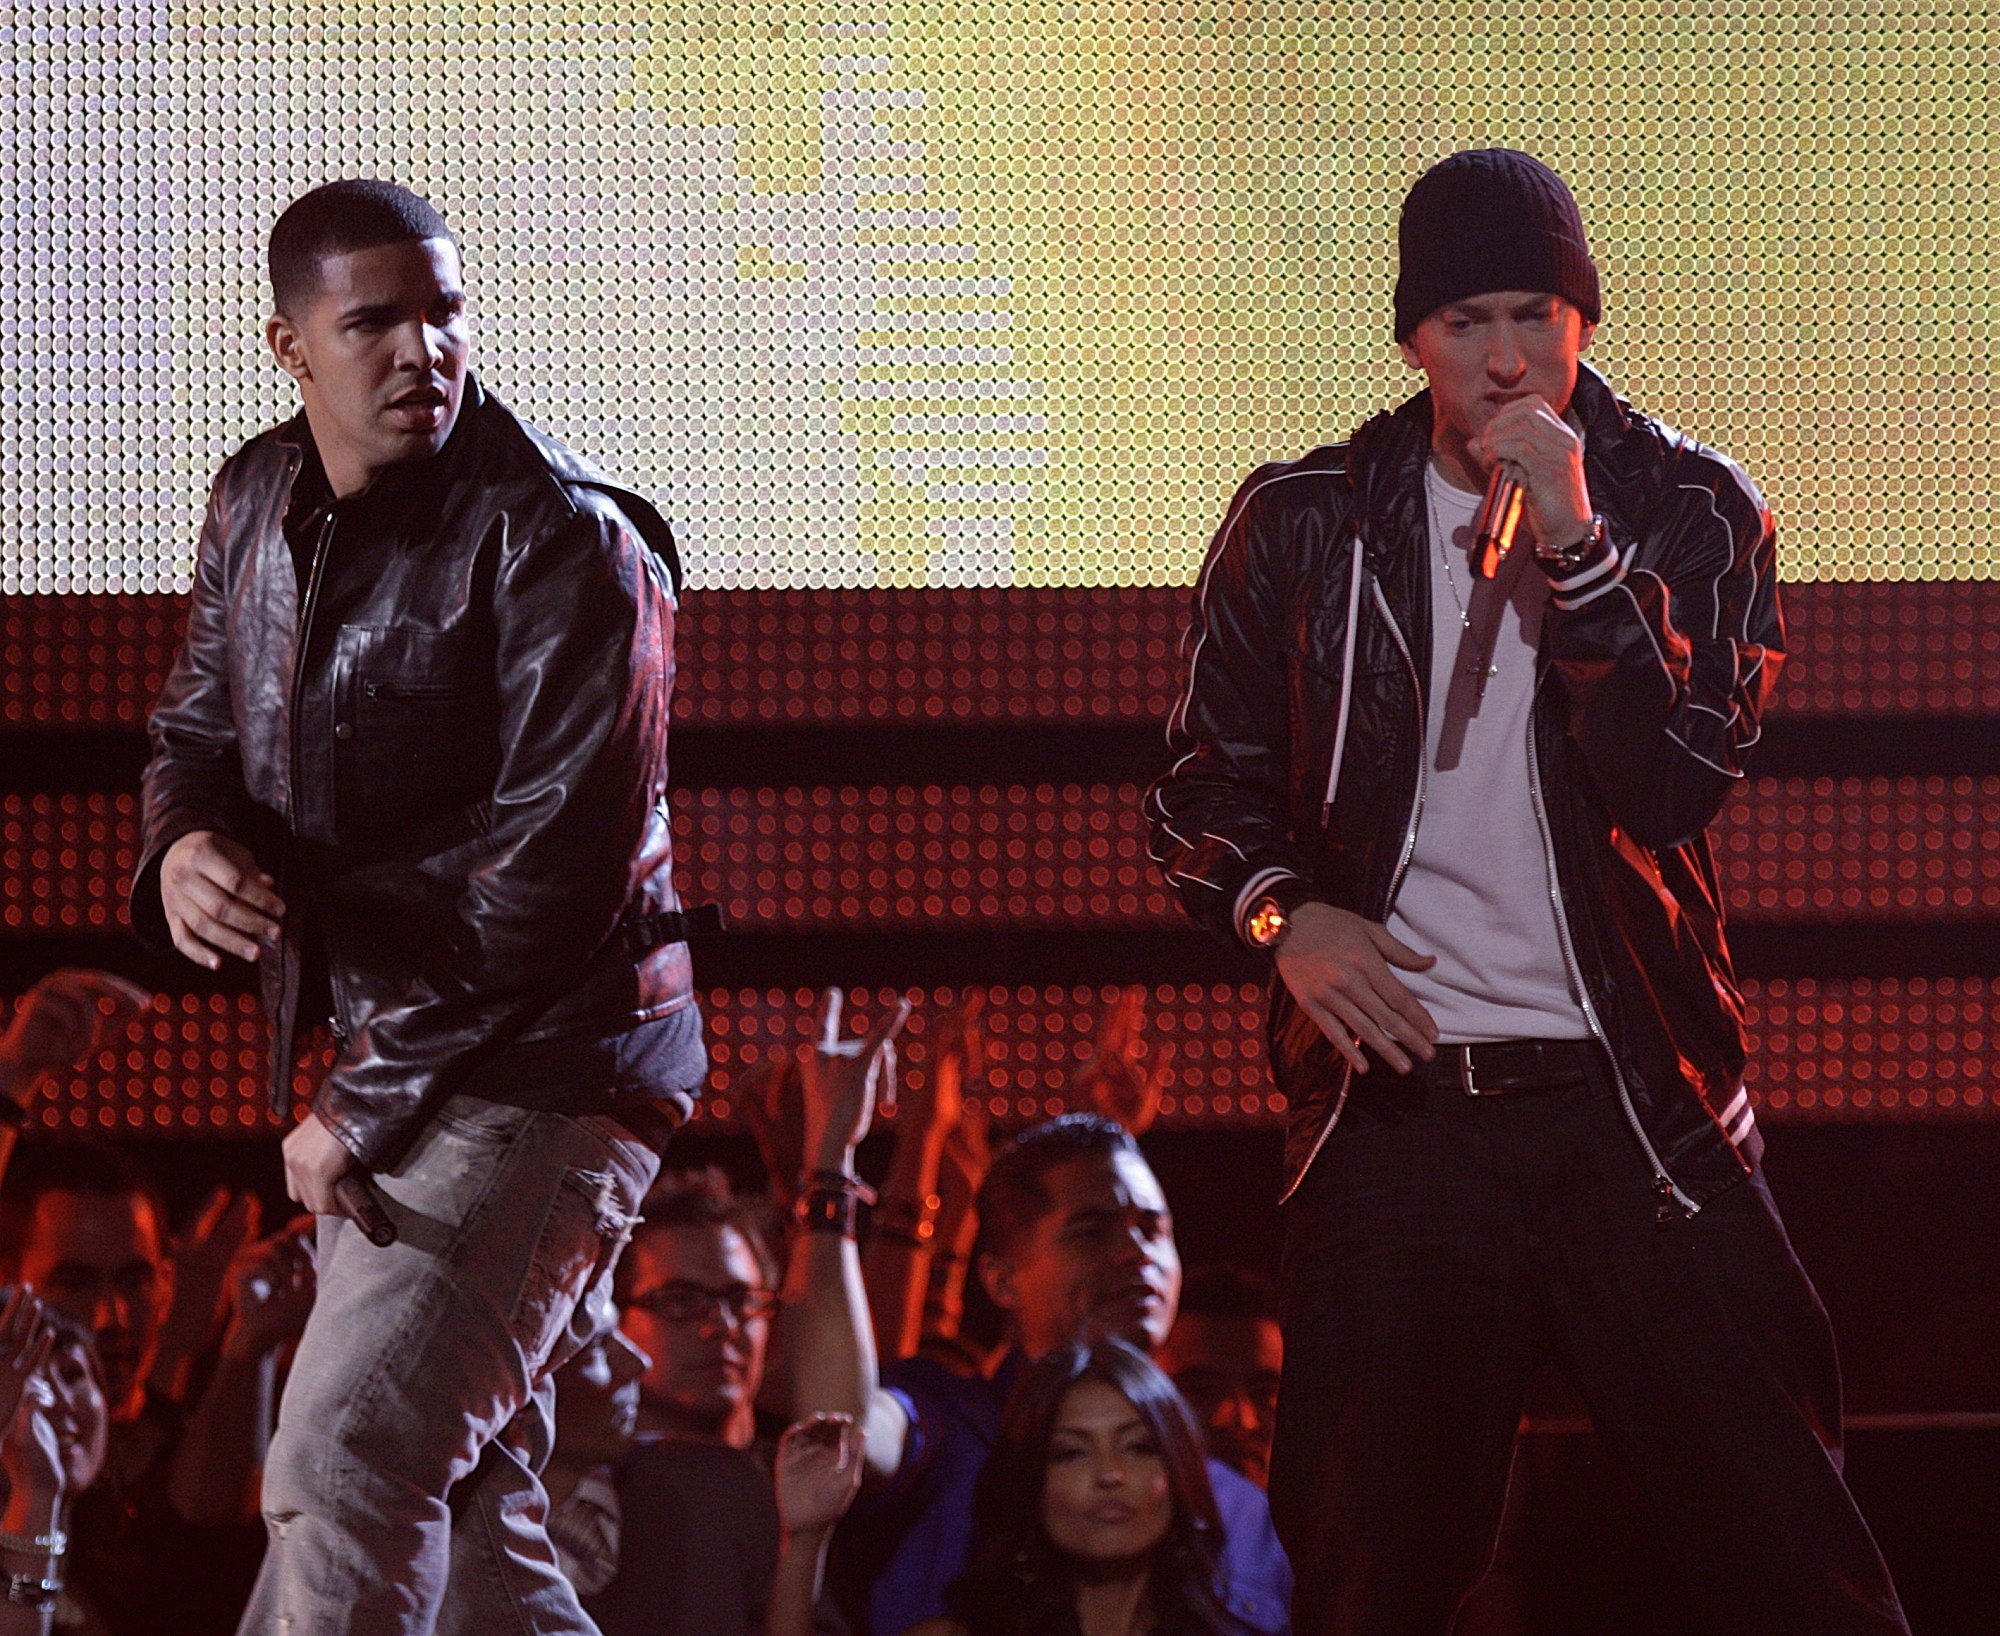 Eminem and Drake perform at the 52nd Annual Grammy Awards, being broadcast live from STAPLES Center in Los Angeles on Feb. 5, 2016.